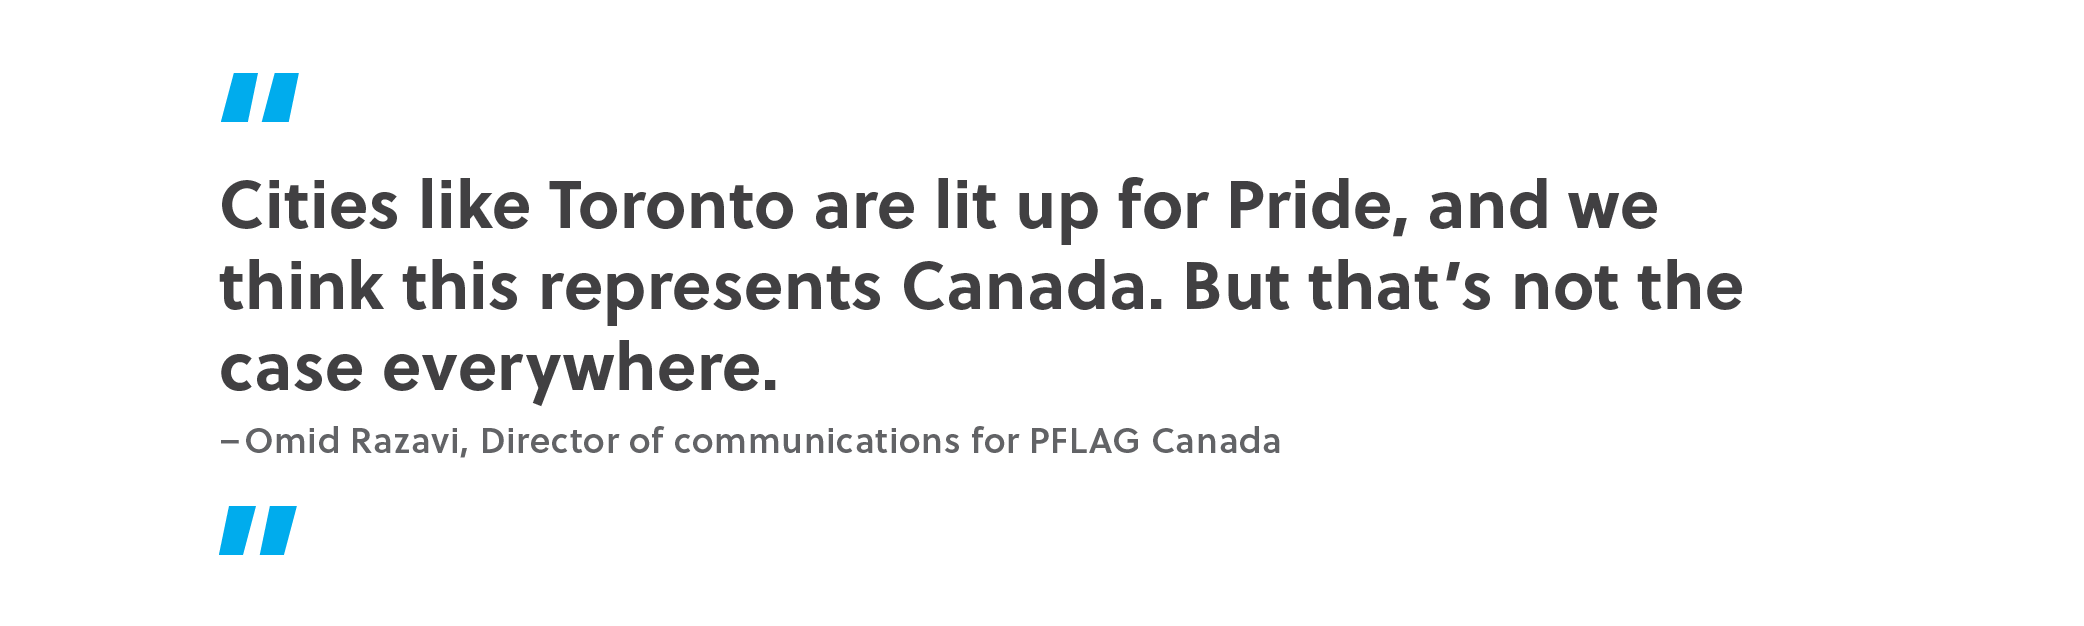 Quote. Cities like Toronto are lit up for Pride, and we think this represents Canada. But that's not the case everywhere. Unquote. Omid Razavi, director of communications for PFLAG Canada.